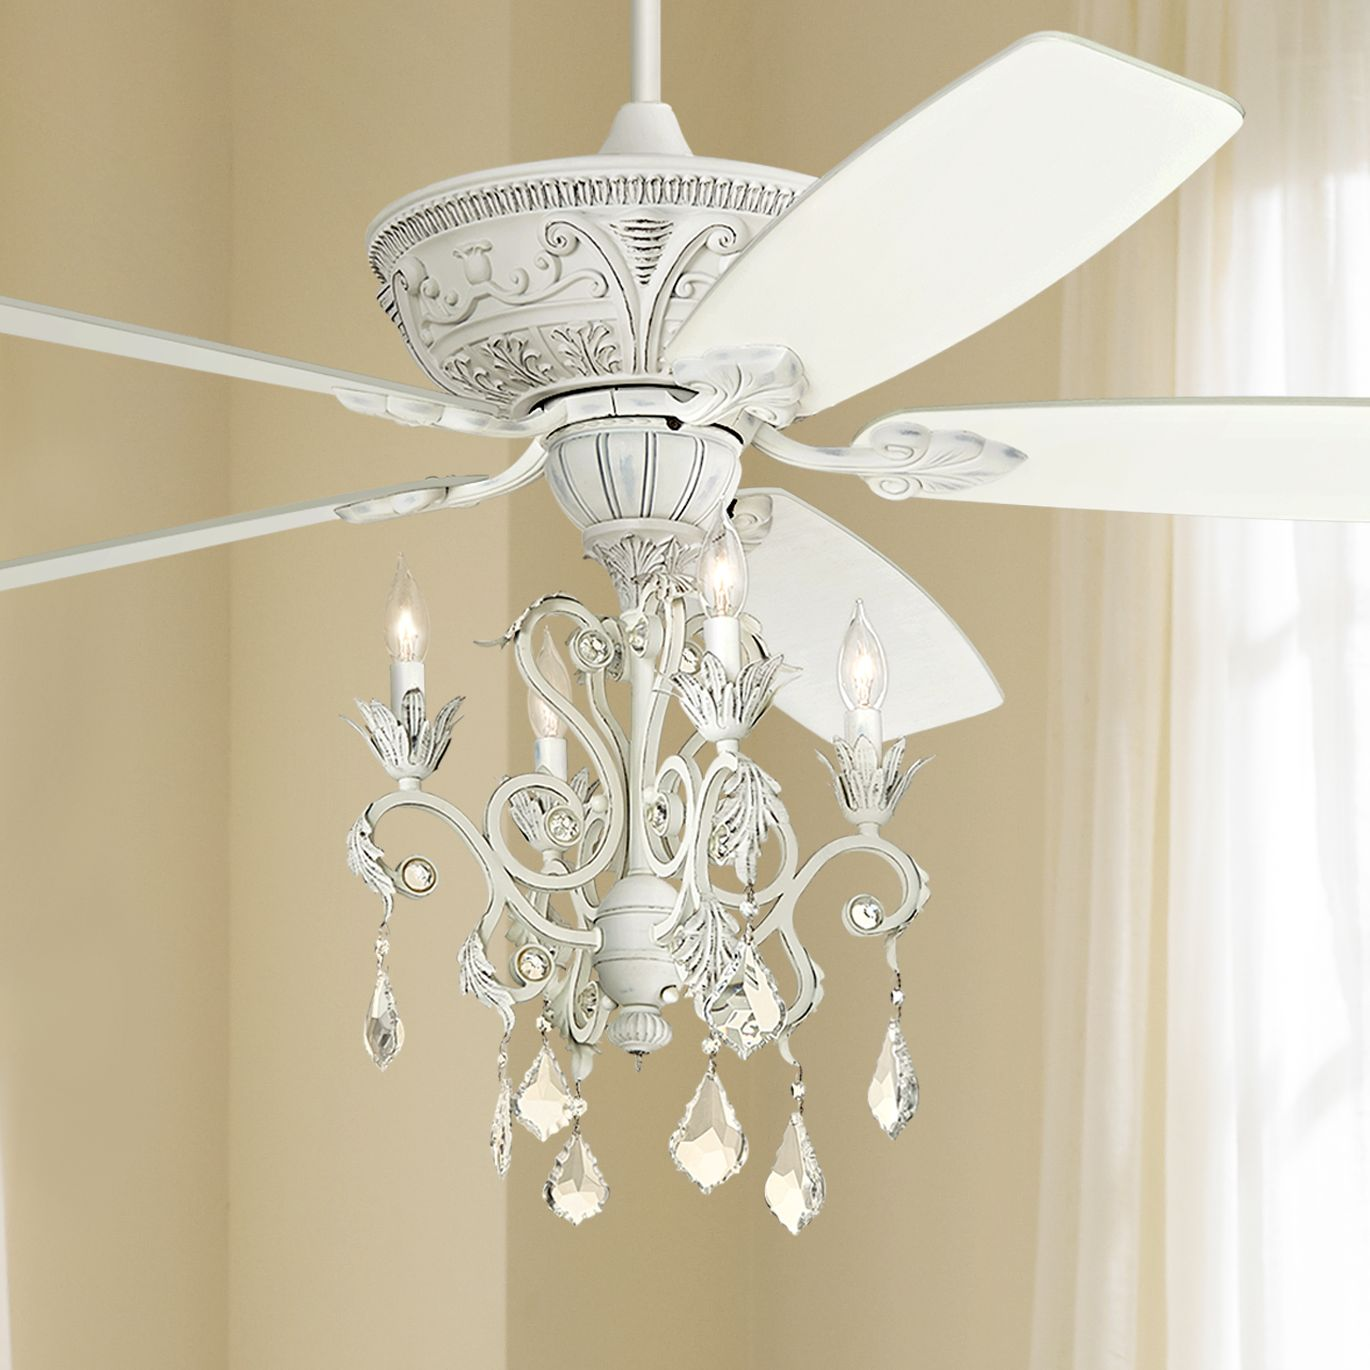 sizes of shades lowes lamp fan led antique bulbs with ceilings chandelier antler covers full gold size earrings whitebs ceiling light stand crystals bulb